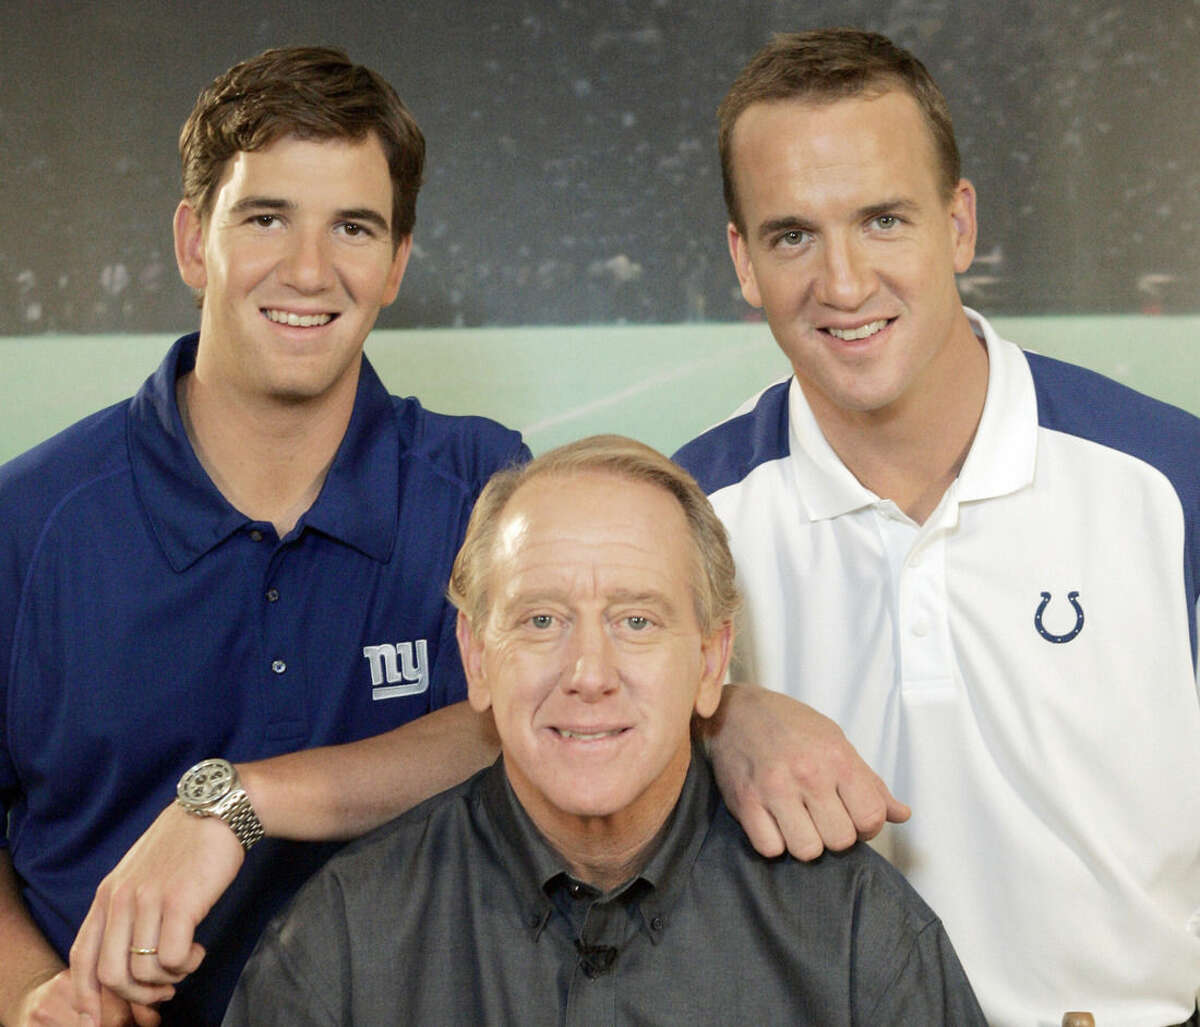 FILE - In this May 8, 2008, file photo, Archie Manning, center, is joined by his sons Eli Manning, left, and Peyton Manning, in Beverly Hills, Calif. A person with knowledge of the decision tells The Associated Press on Monday, March 6, 2016, that Peyton Manning has informed the Denver Broncos he's going to retire. (AP Photo/Reed Saxon, File)